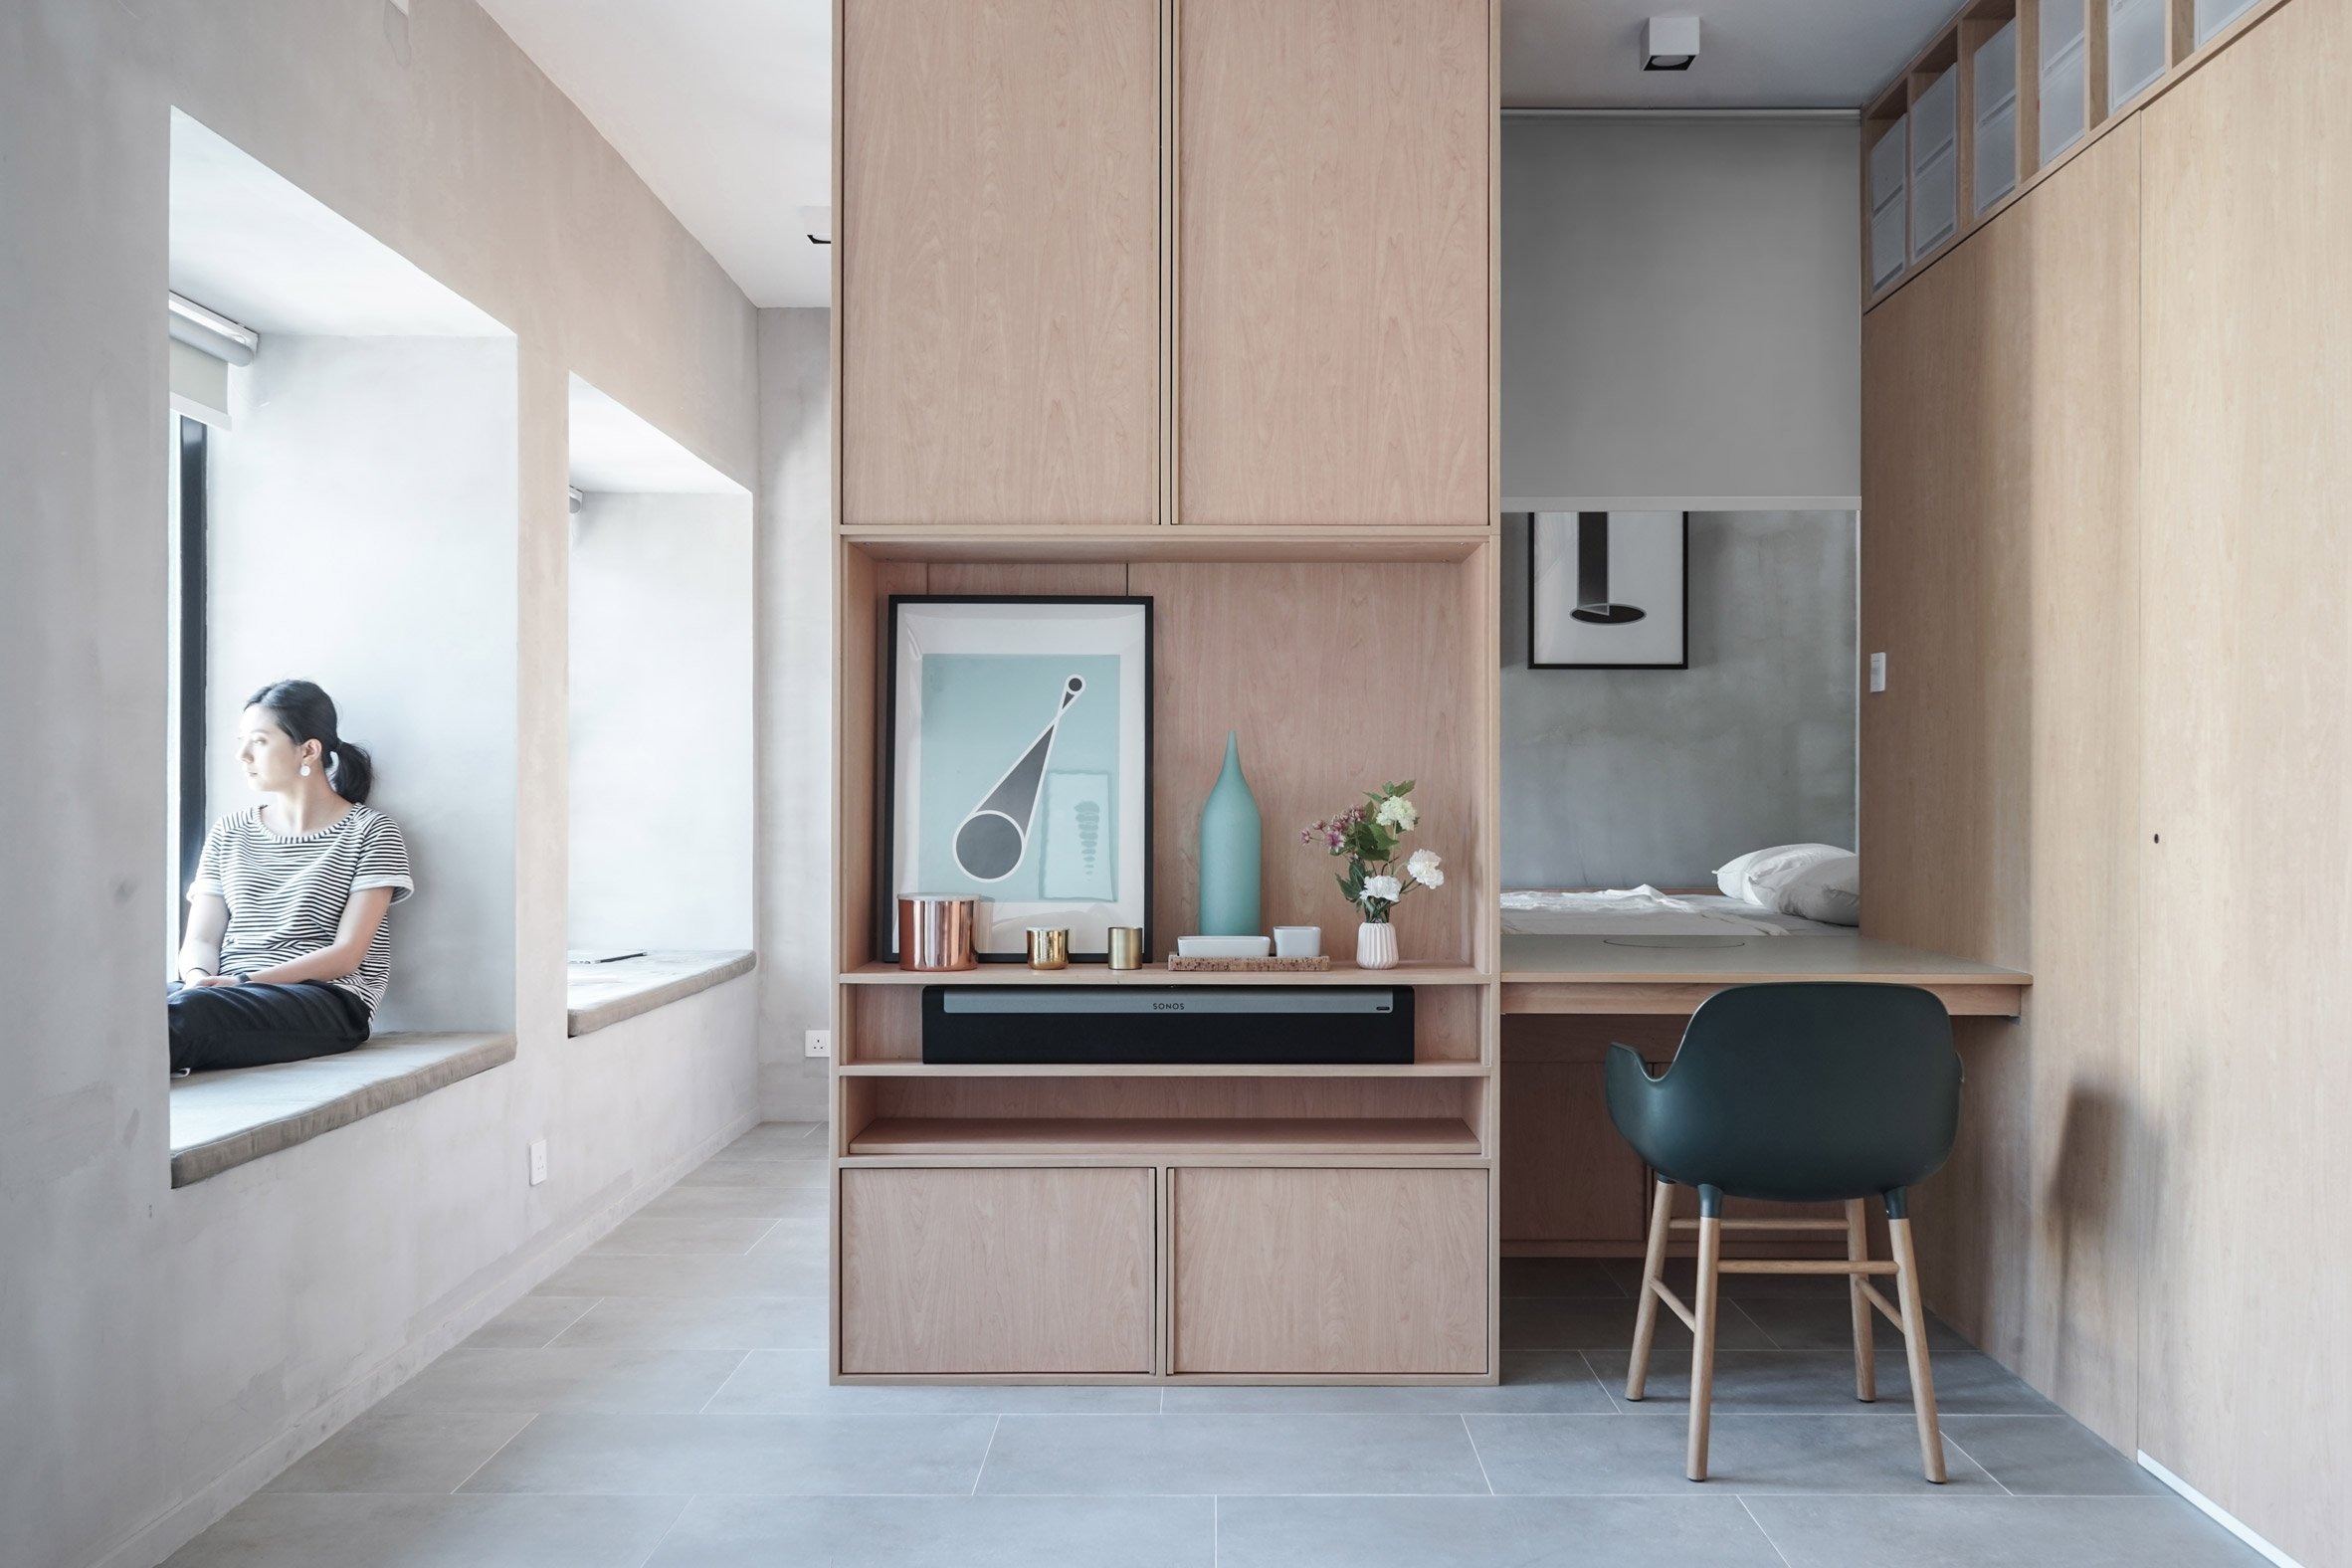 An apartment divided by cabinetry